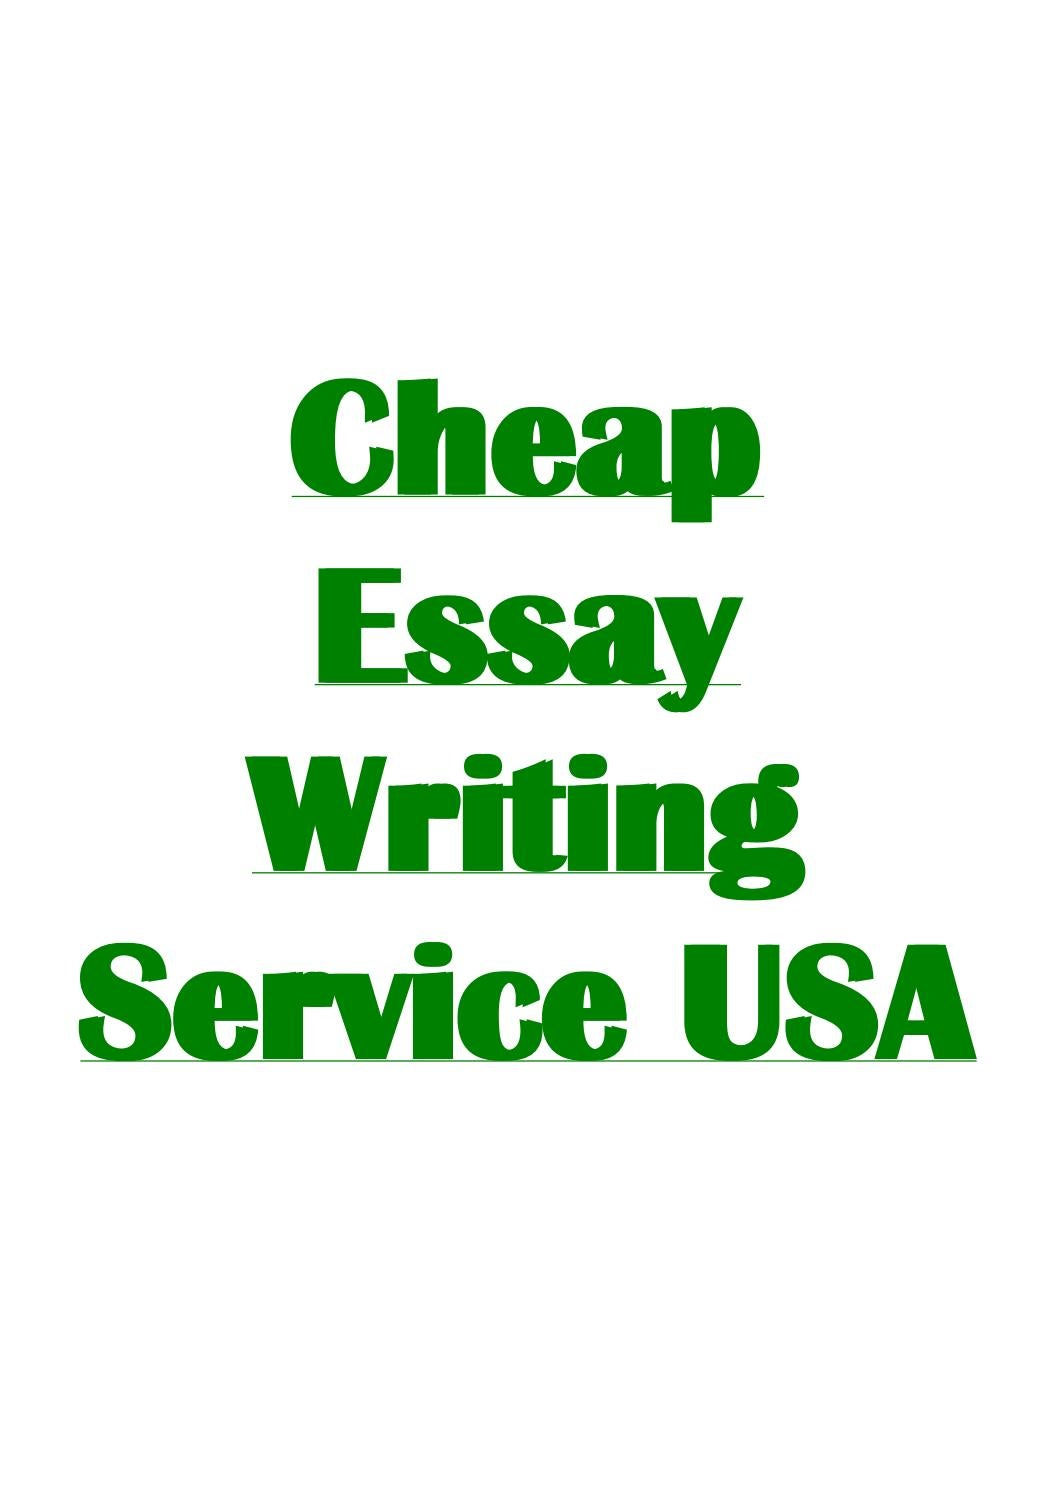 CHEAP ESSAY WRITING SERVICE USA PARK FOREST VILLAGE By